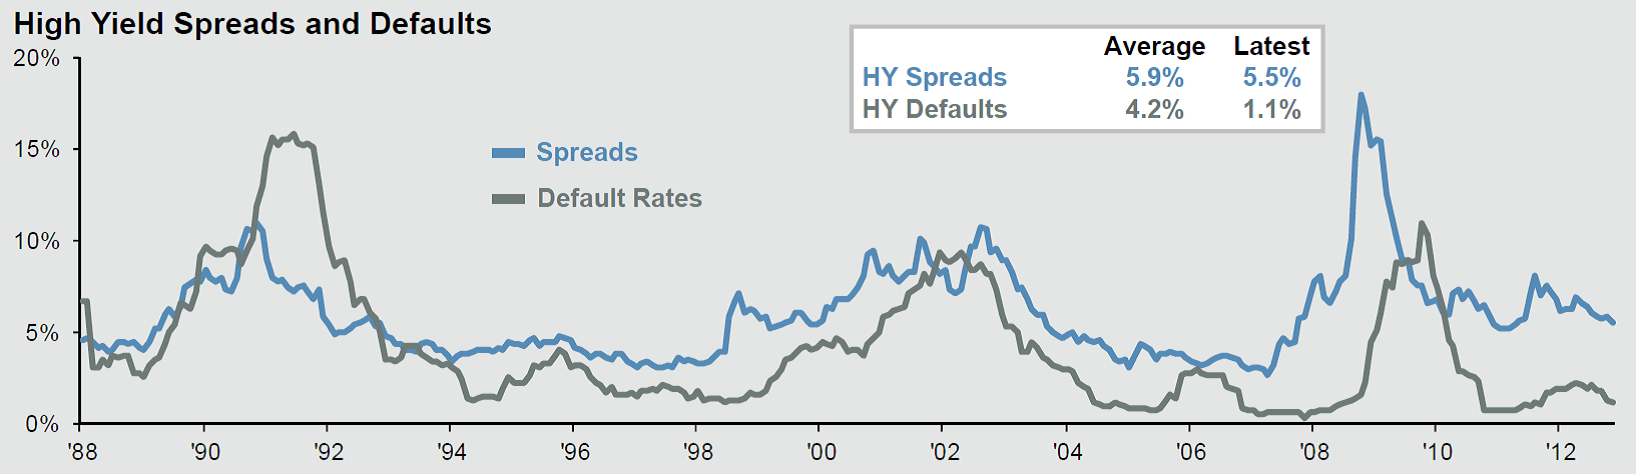 High Yield Market Myths